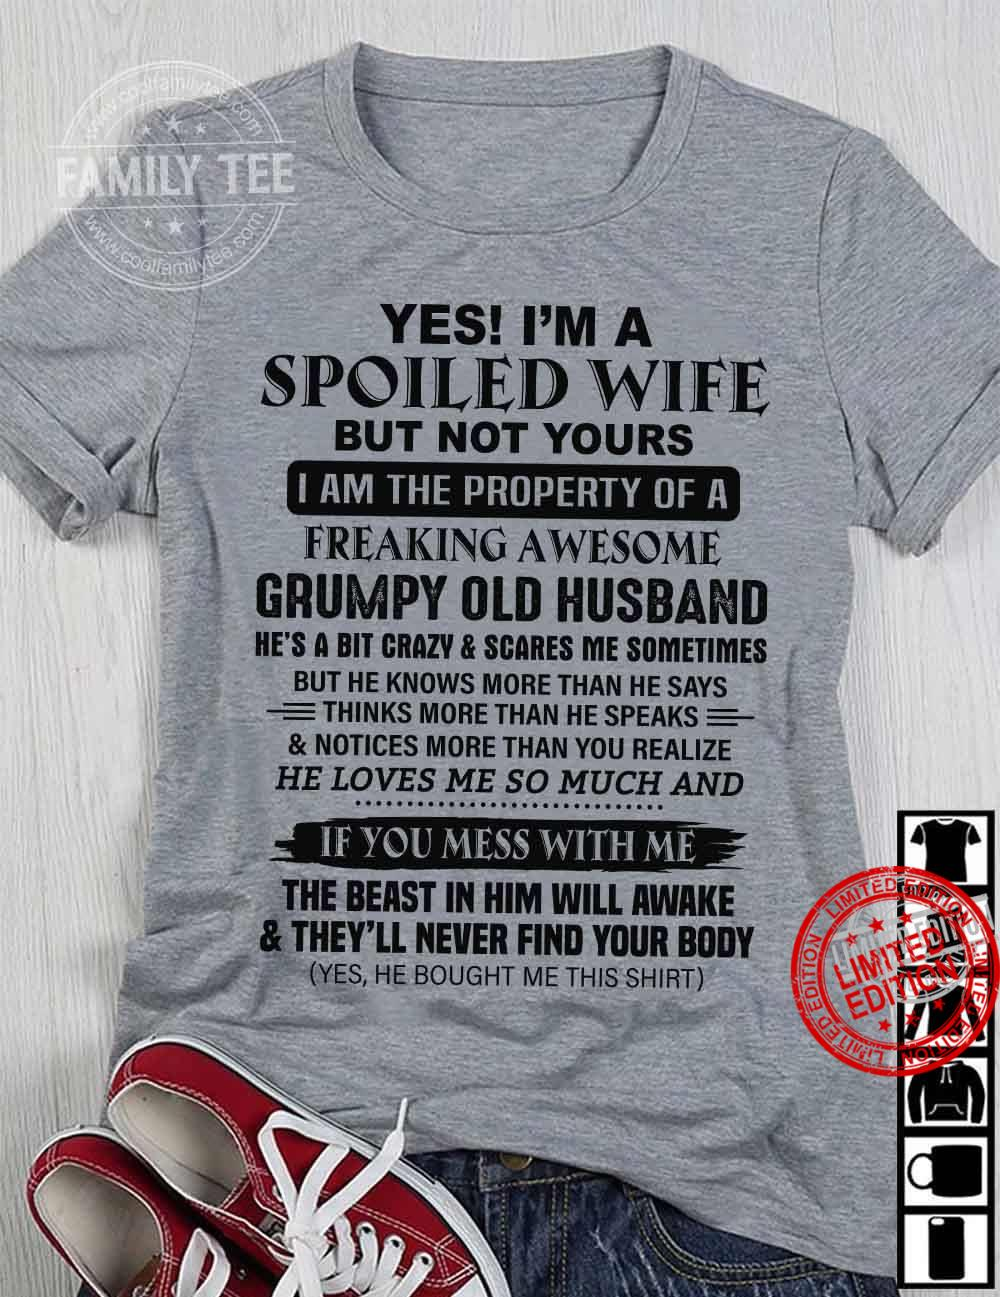 Yes I'm A Spoiled Wife But Not Yours I Am The Property Of A Freaking Awesome If You Mess With Me The Beast In Him Will Awake & They'll Never Find Your Body Shirt